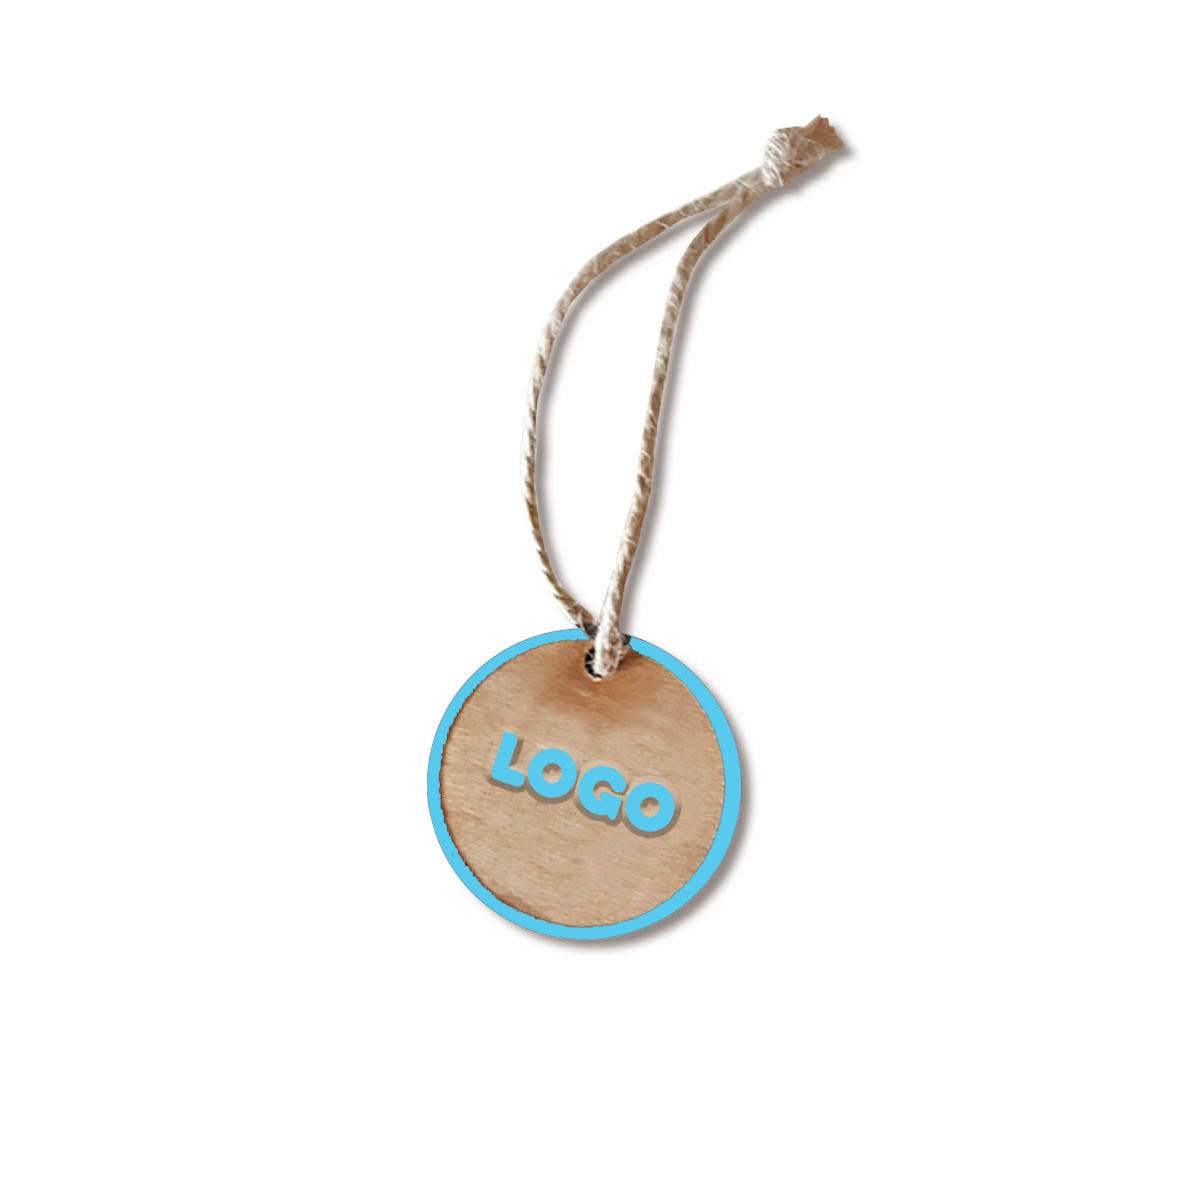 137889 wooden hangtag 1 5 one side laser engraved with ink